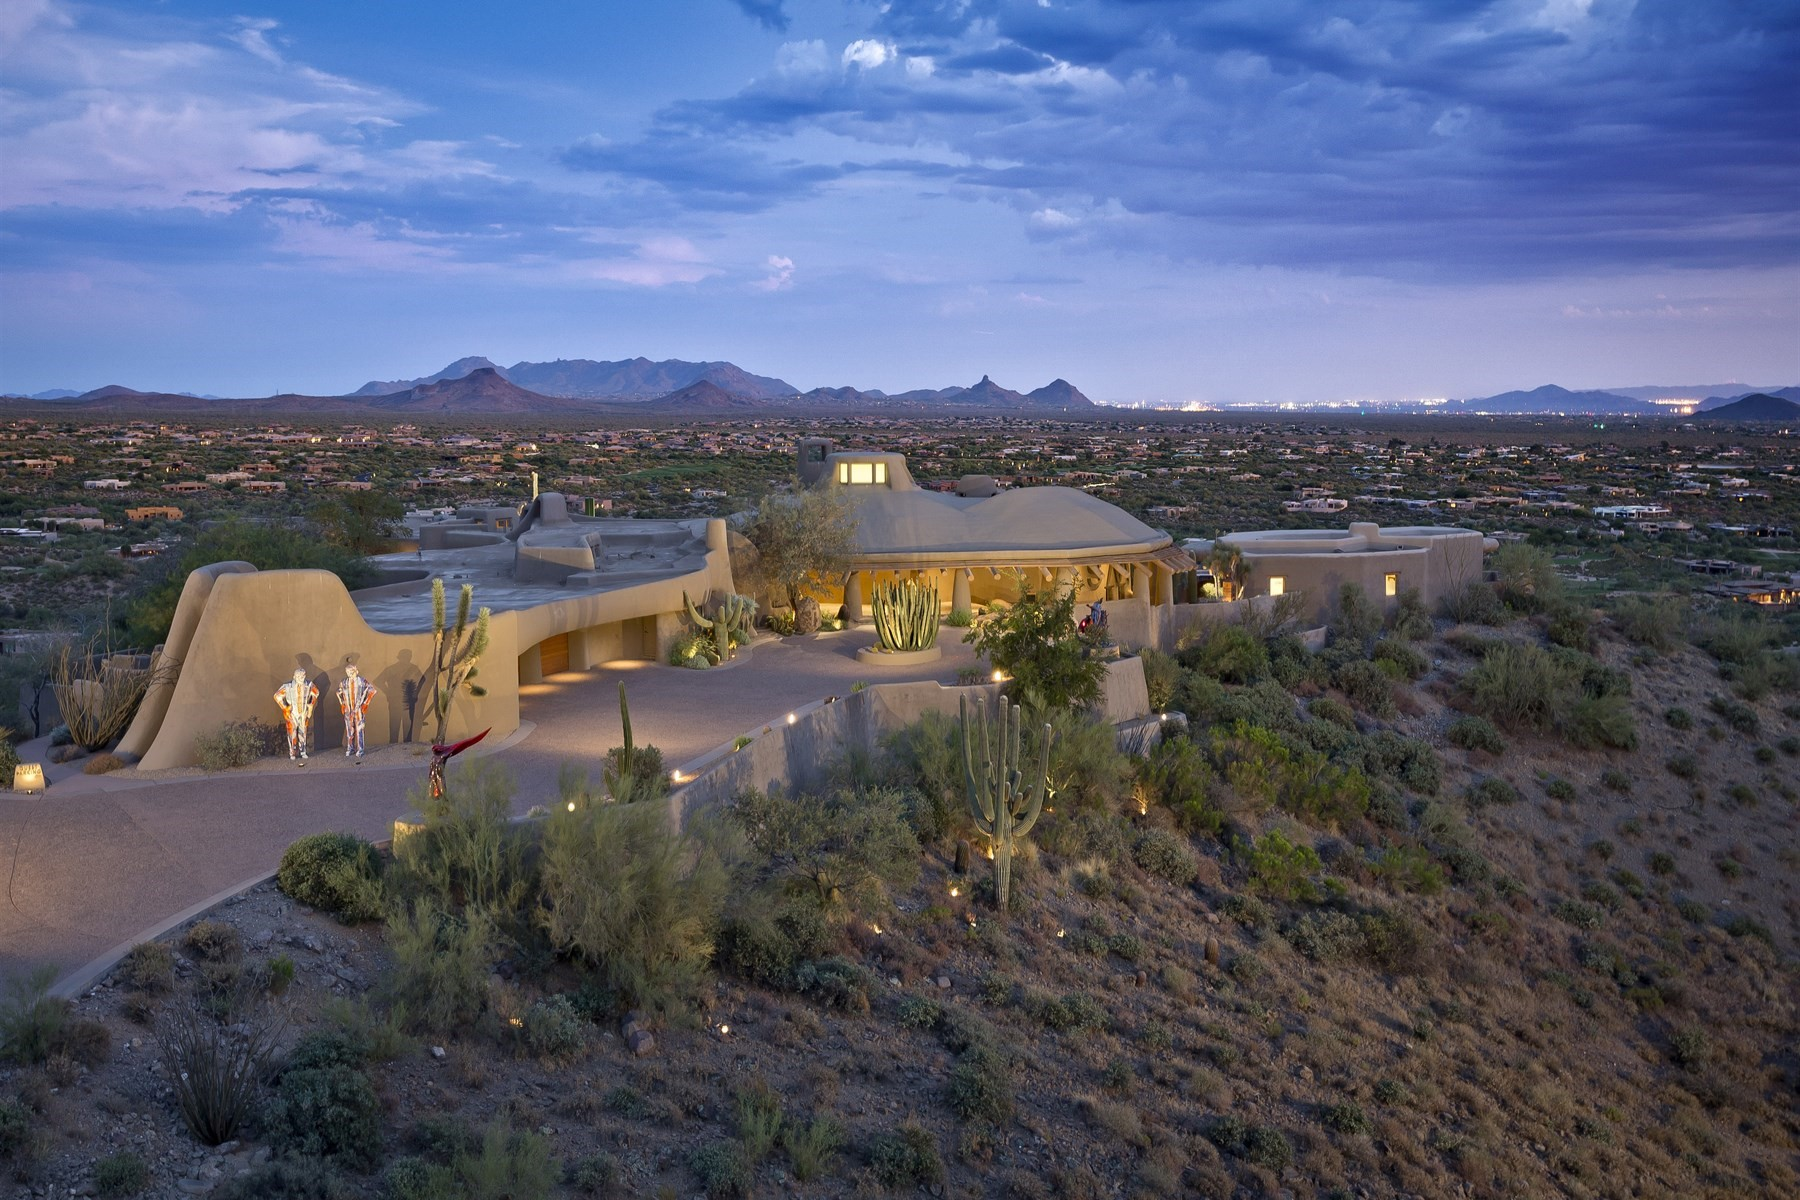 一戸建て のために 売買 アット One-of-a-kind 15-acre estate that towers over the valley 39029 N Alister McKenzie Dr, Scottsdale, アリゾナ, 85262 アメリカ合衆国